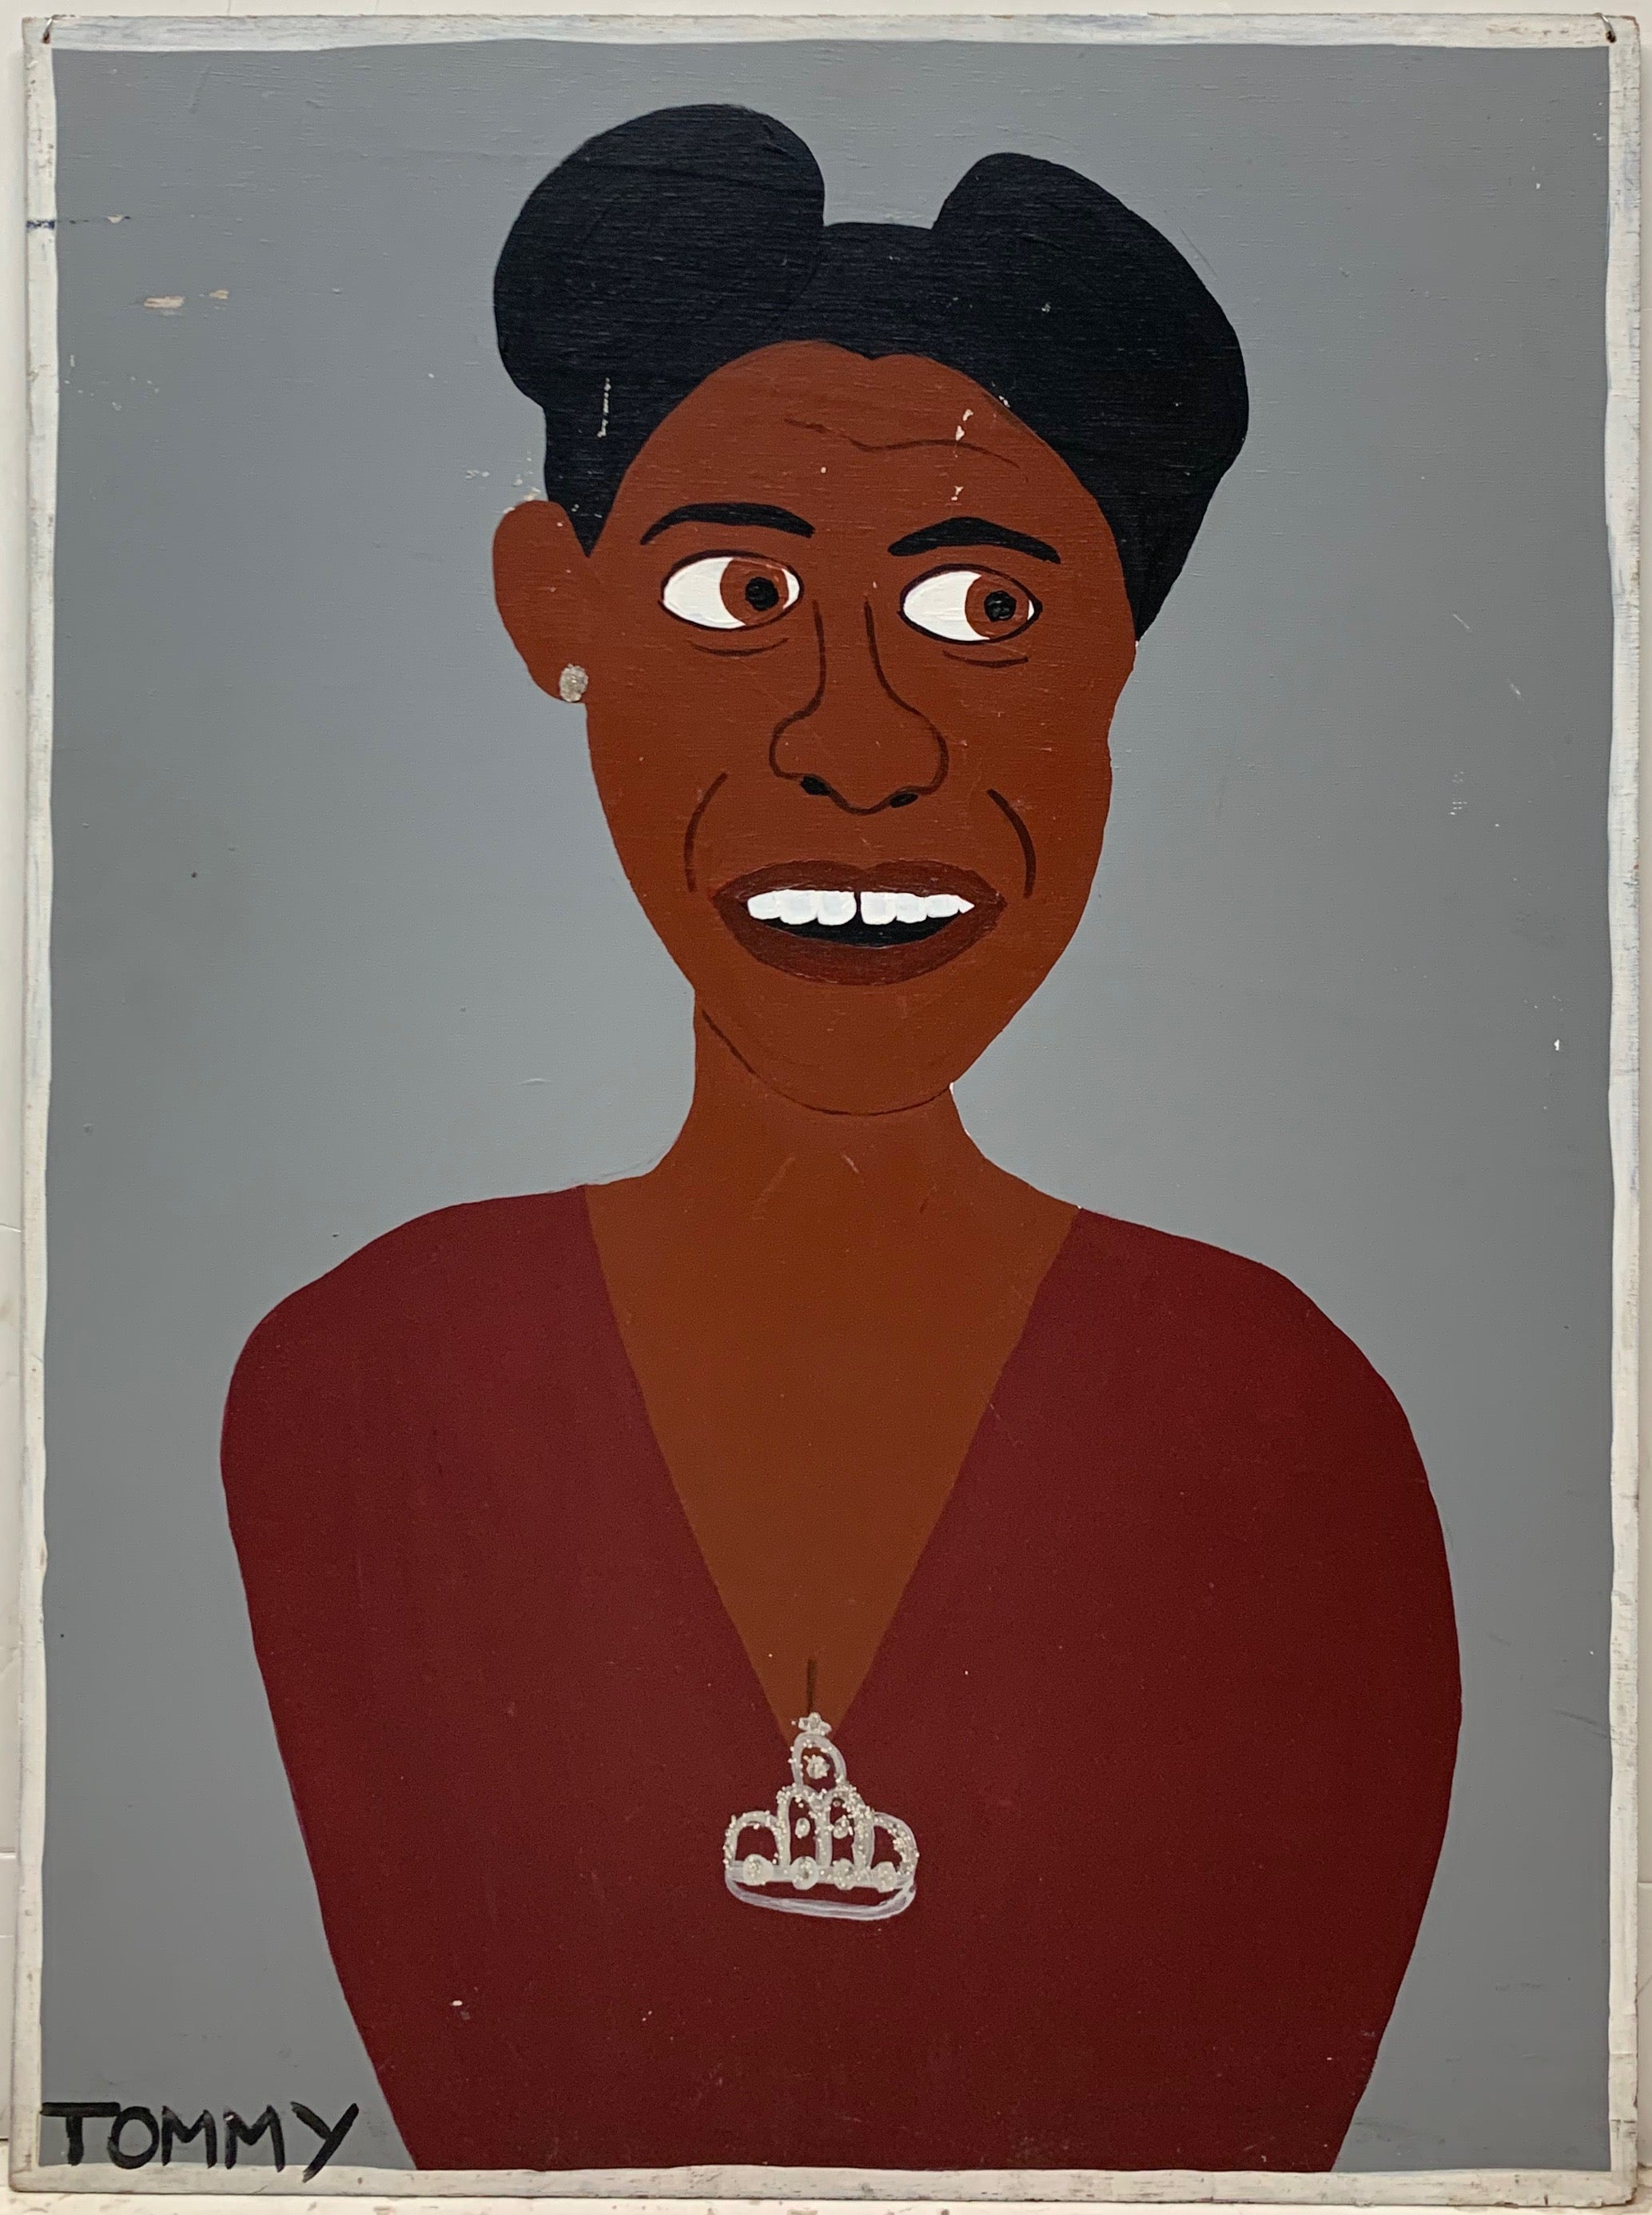 A Tommy Cheng portrait of Ella Fitzgerald wearing a red dress with a diamond crown brooch attached.